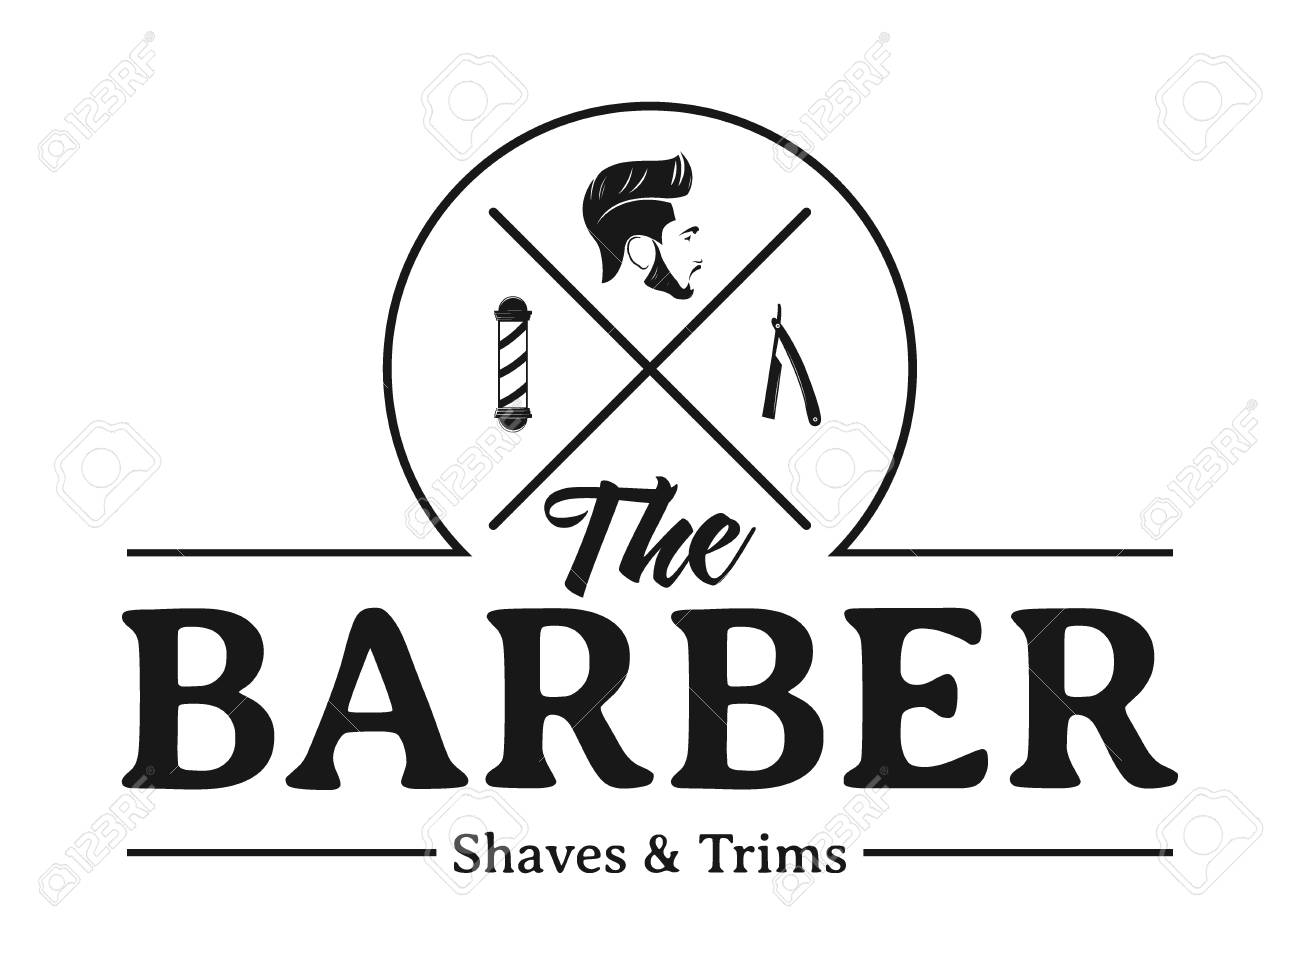 Men Barbershop Hairstylist Banner Logo Badge Vector Design Template Royalty Free Cliparts Vectors And Stock Illustration Image 117709379